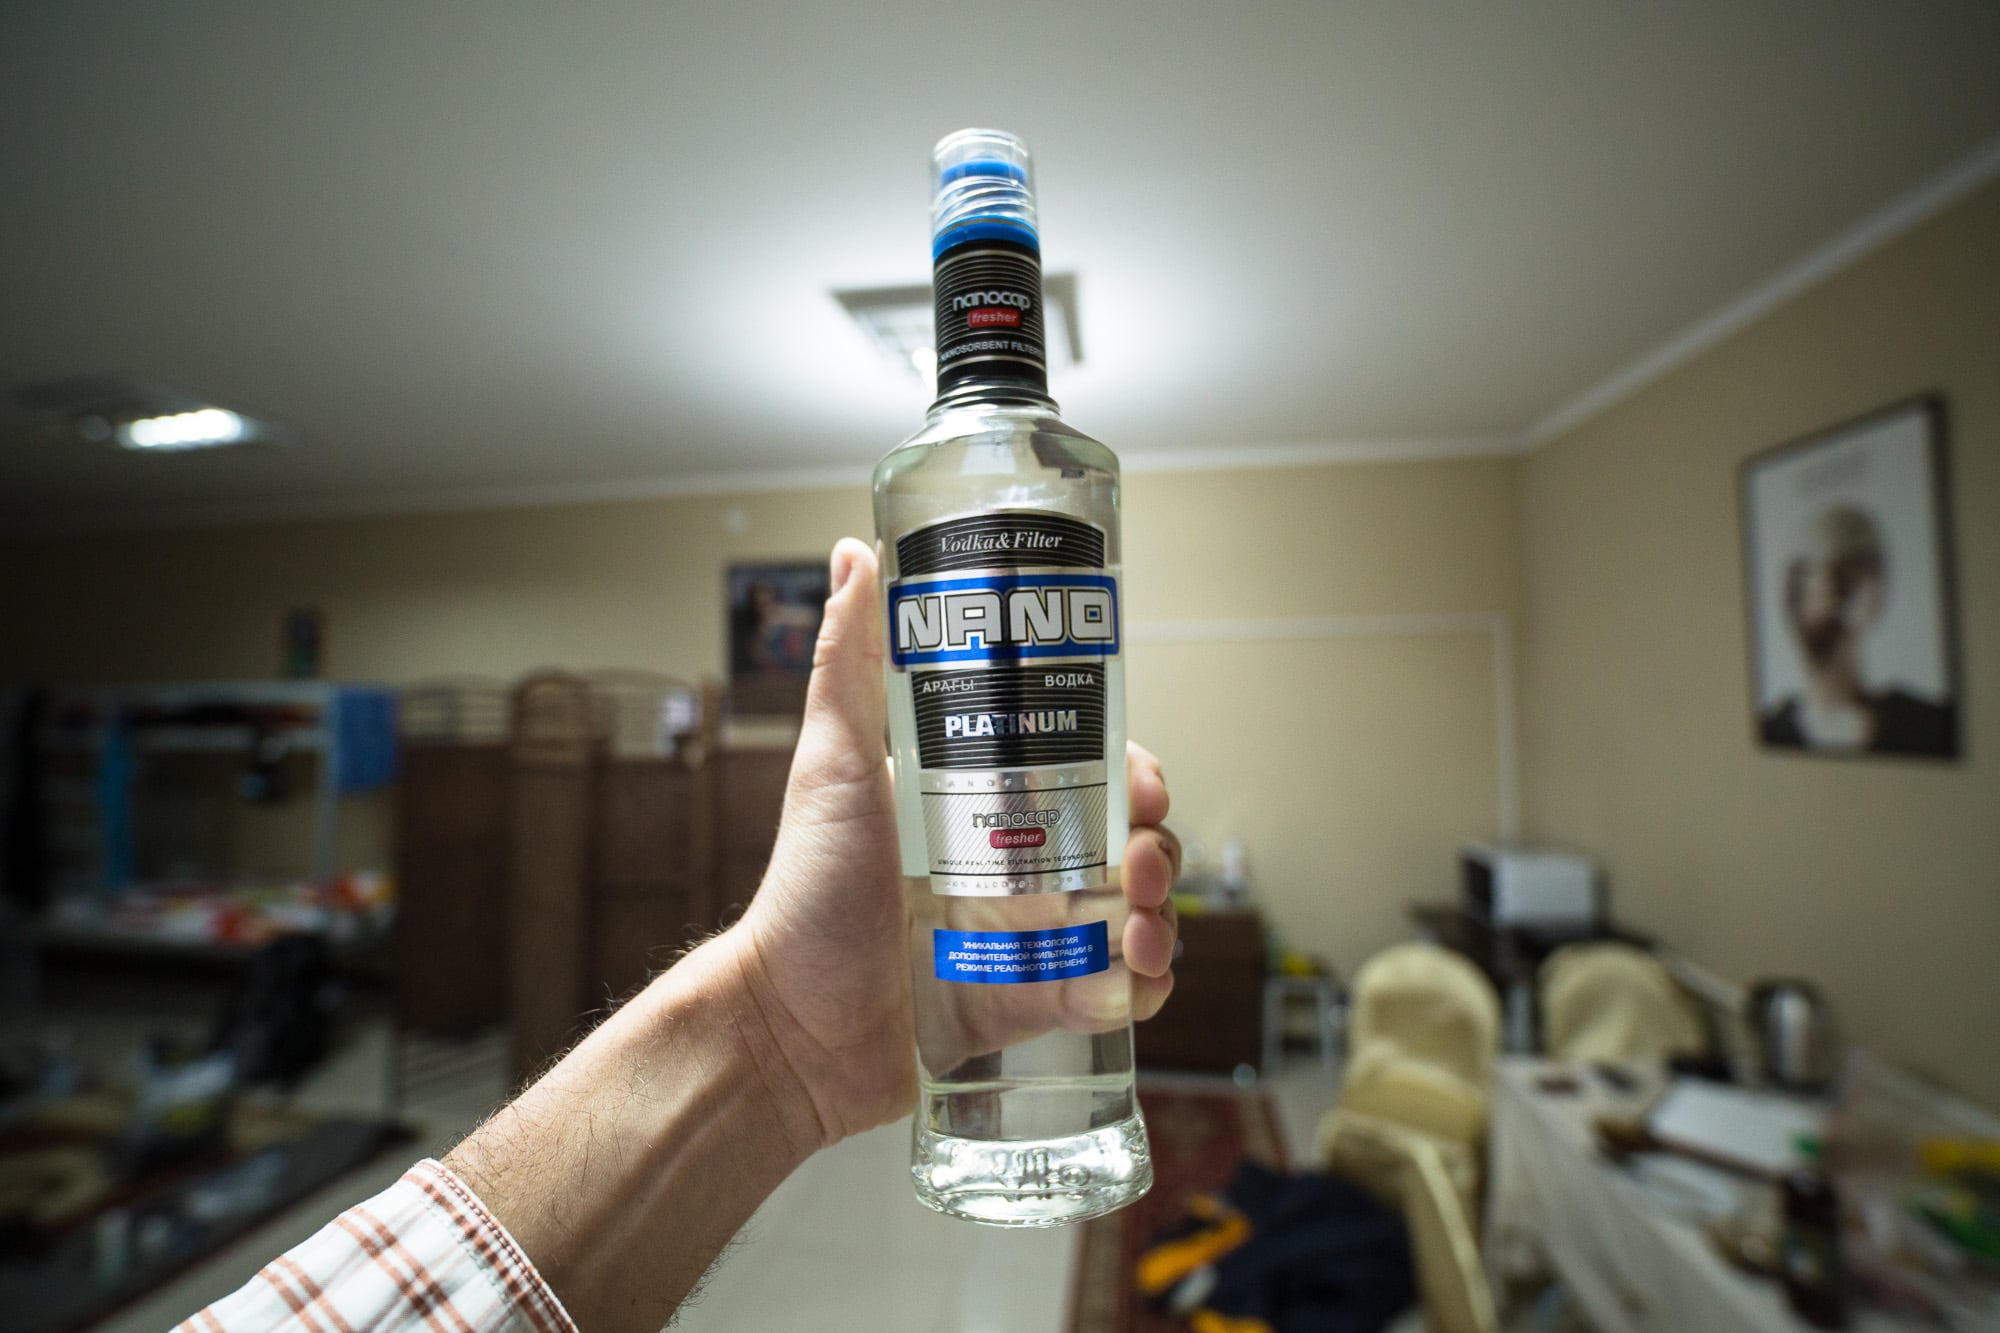 Nano Platinum vodka